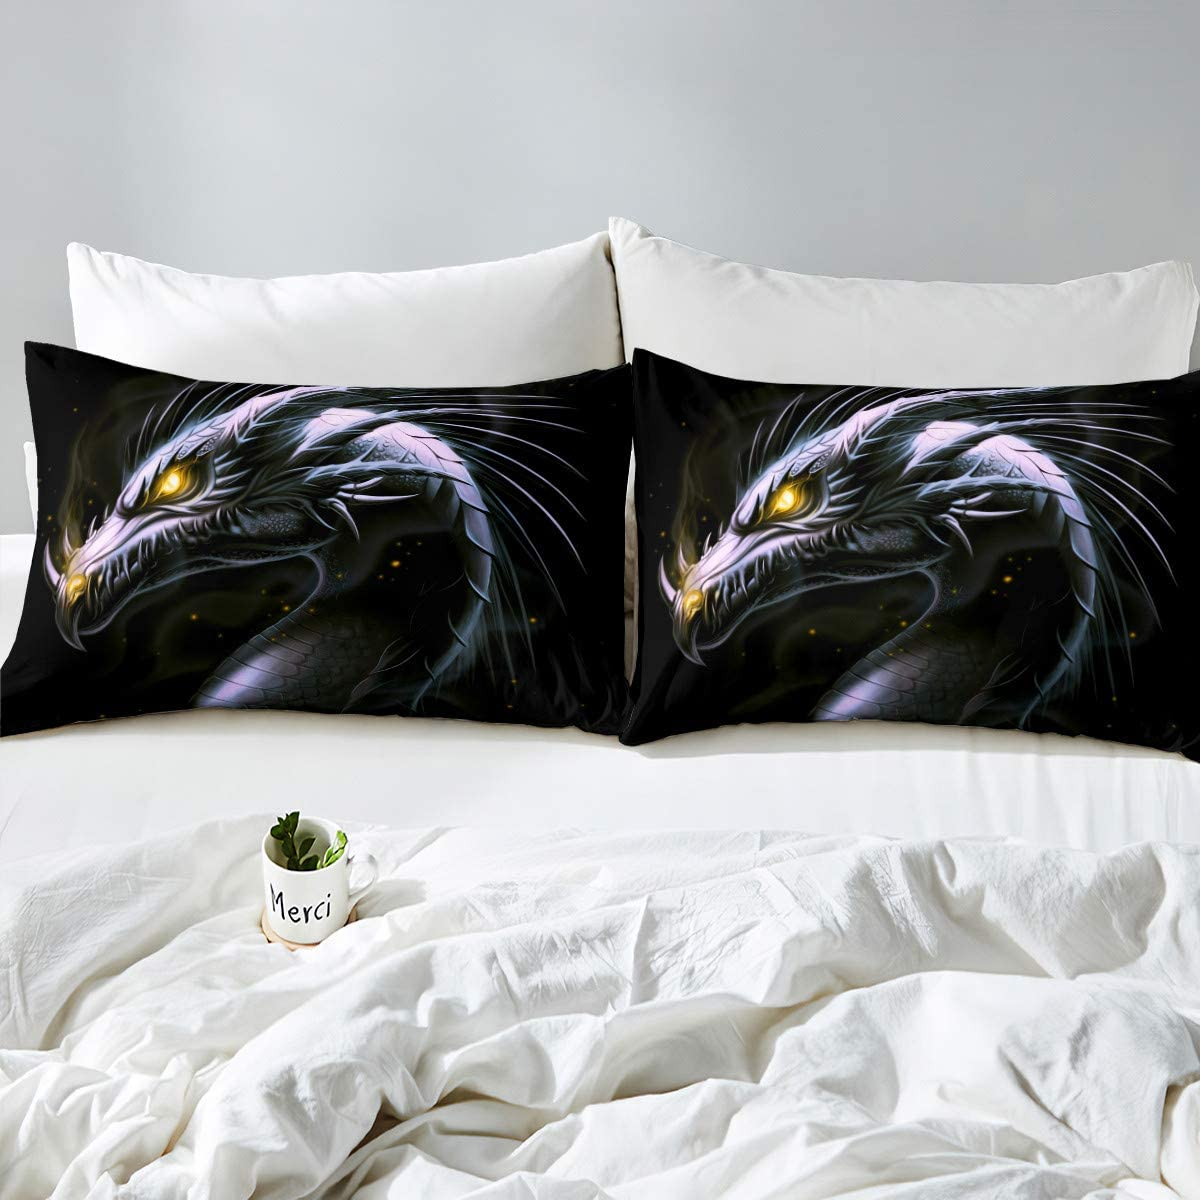 1 Fitted Sheet /& 2 Pillow Case Dragon Black Star Bed Sheet Set Full 54x75 Animals Theme Printed Microfiber Bed Fitted Sheet Set for Teen Girls Novelty Bedding Set 3pcs